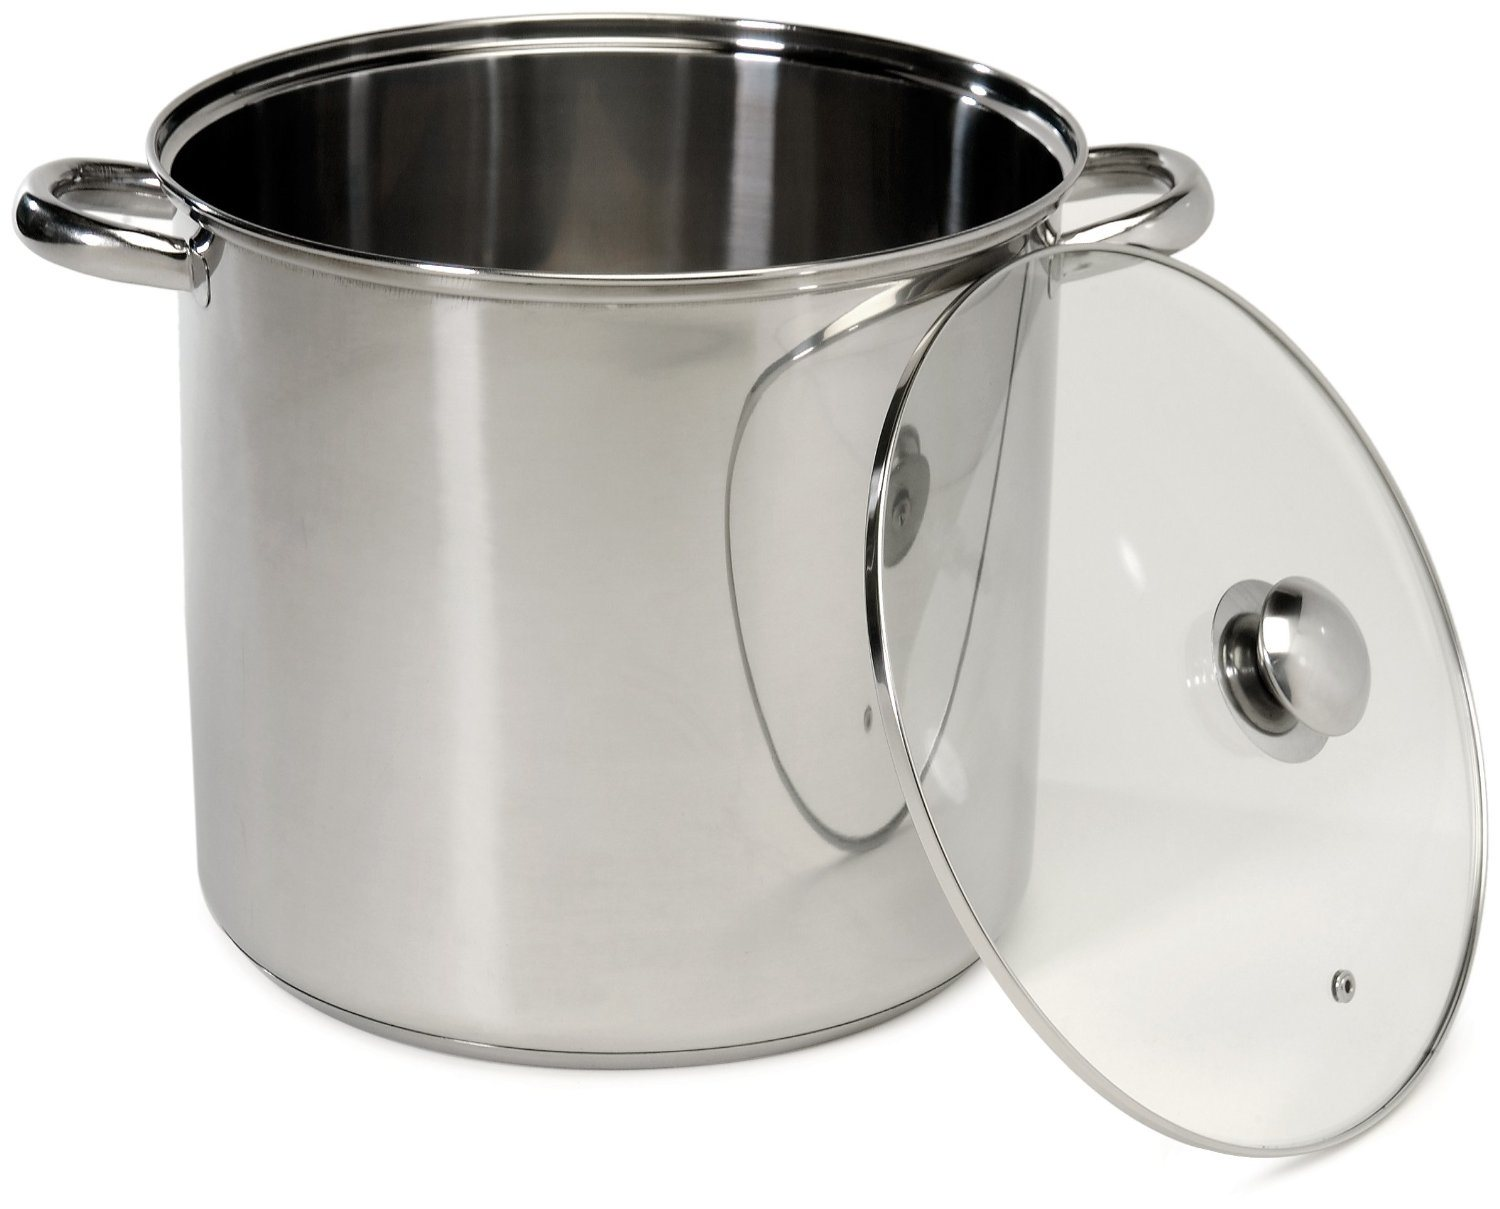 Different Size for Safety Handle Sauce Pan and Pot/ Cookware